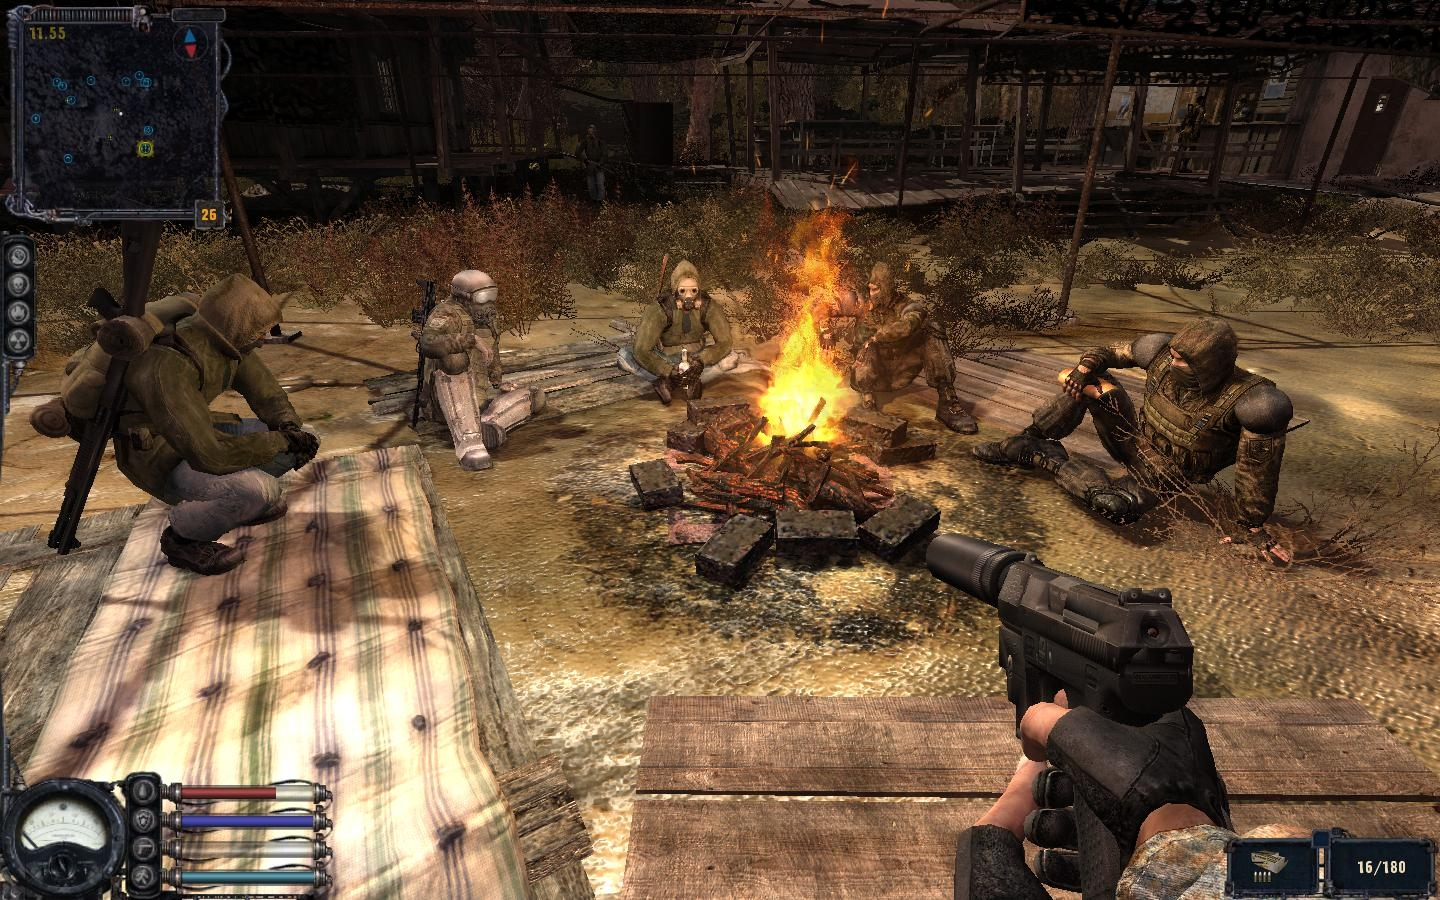 S.T.A.L.K.E.R.: Clear Sky - HWM (2012) PC